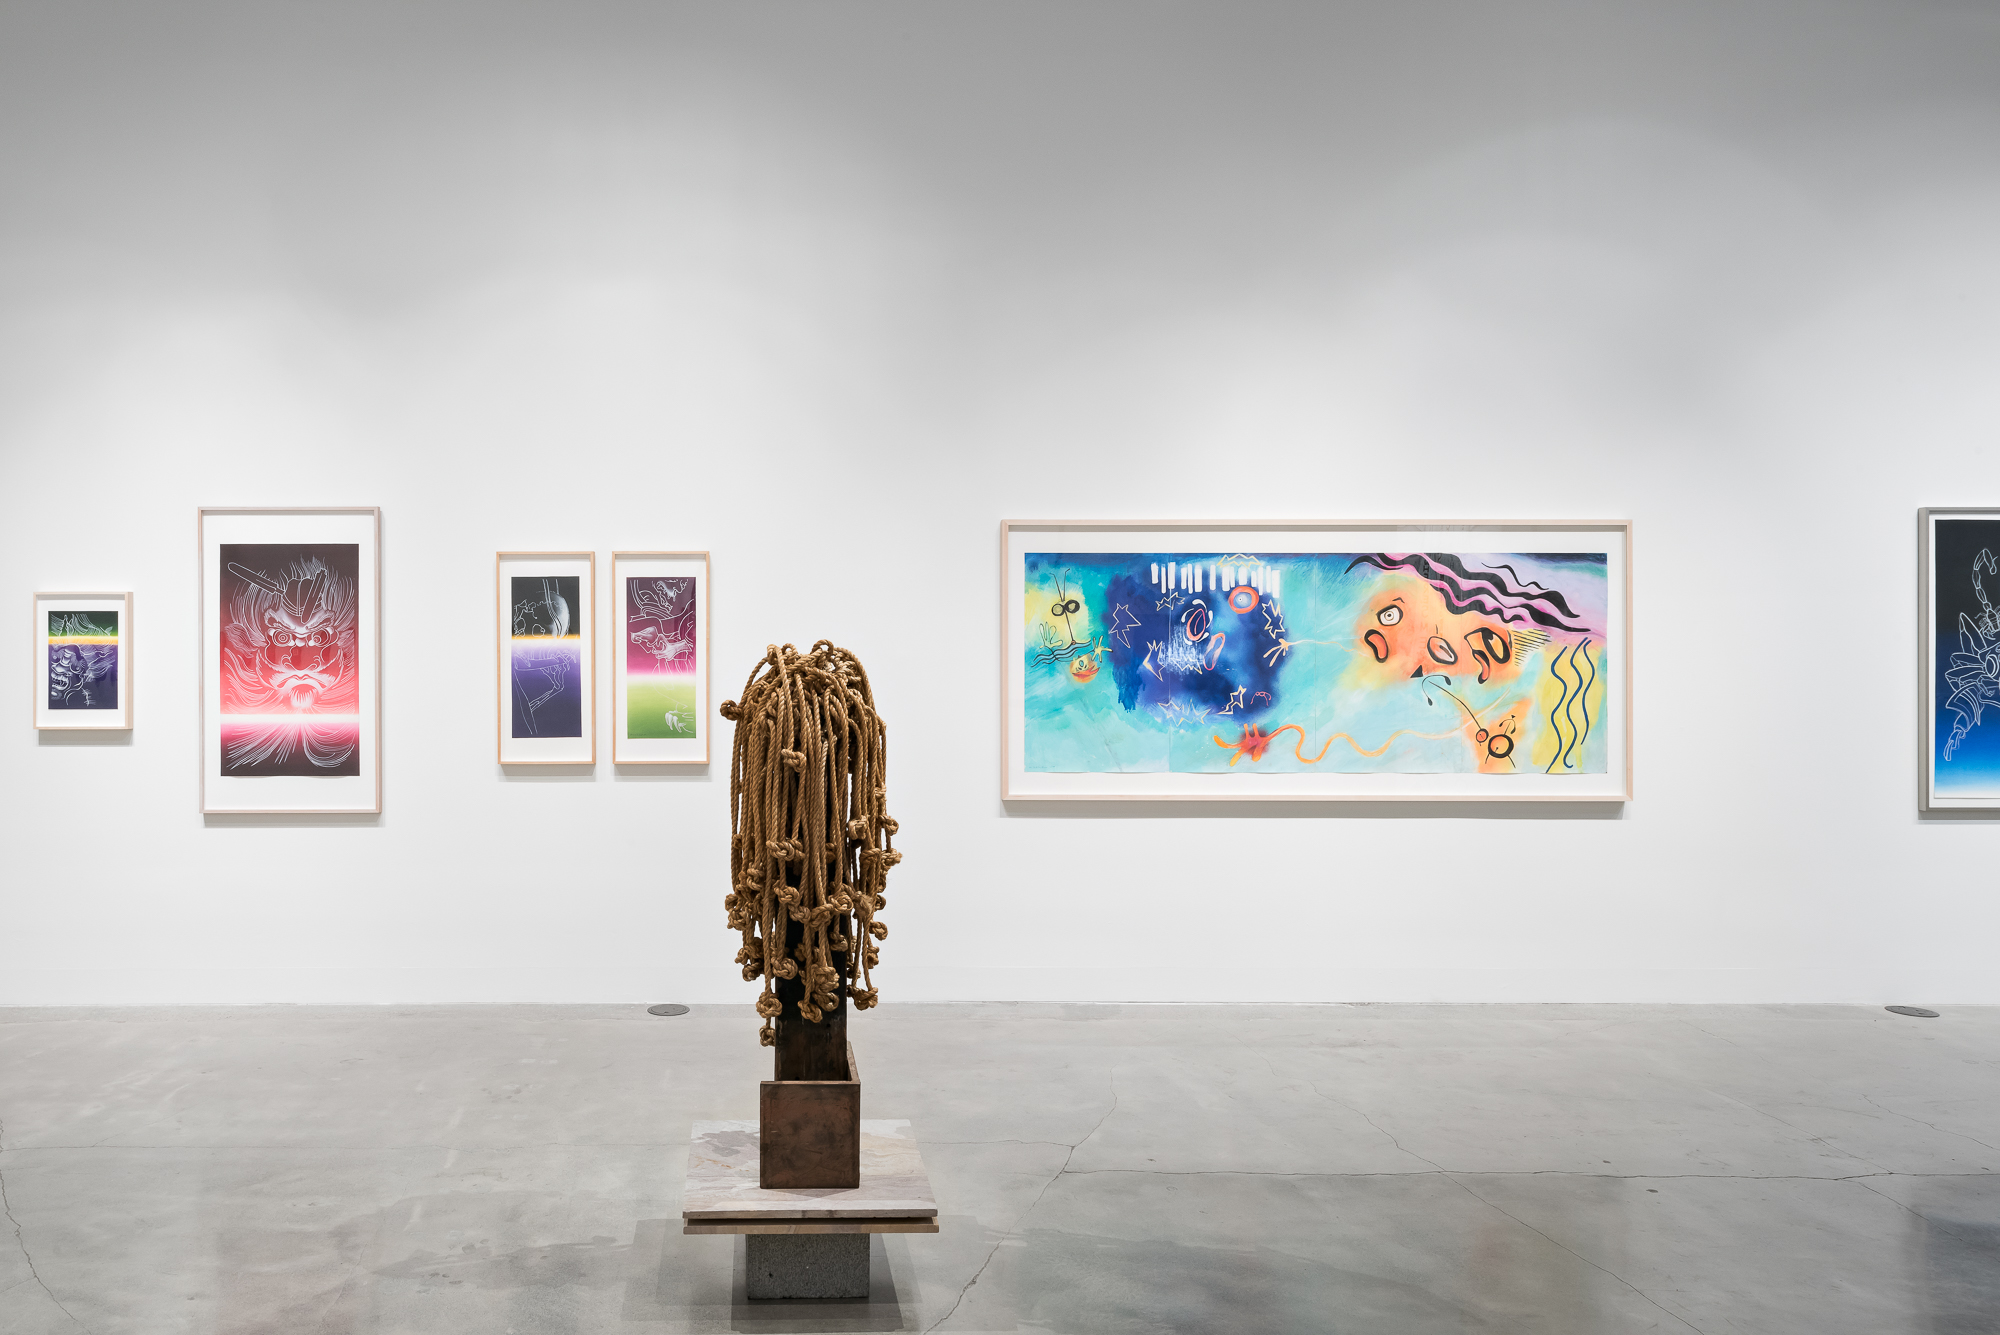 Image: Installation view of  With(out) With(in) the very moment  at San Francisco Arts Commission Gallery.  He Cries, She Cries: Homage to our Sisters  by Ed Aulerich-Sugai is second from the right. Photo by Phillip Maisel.